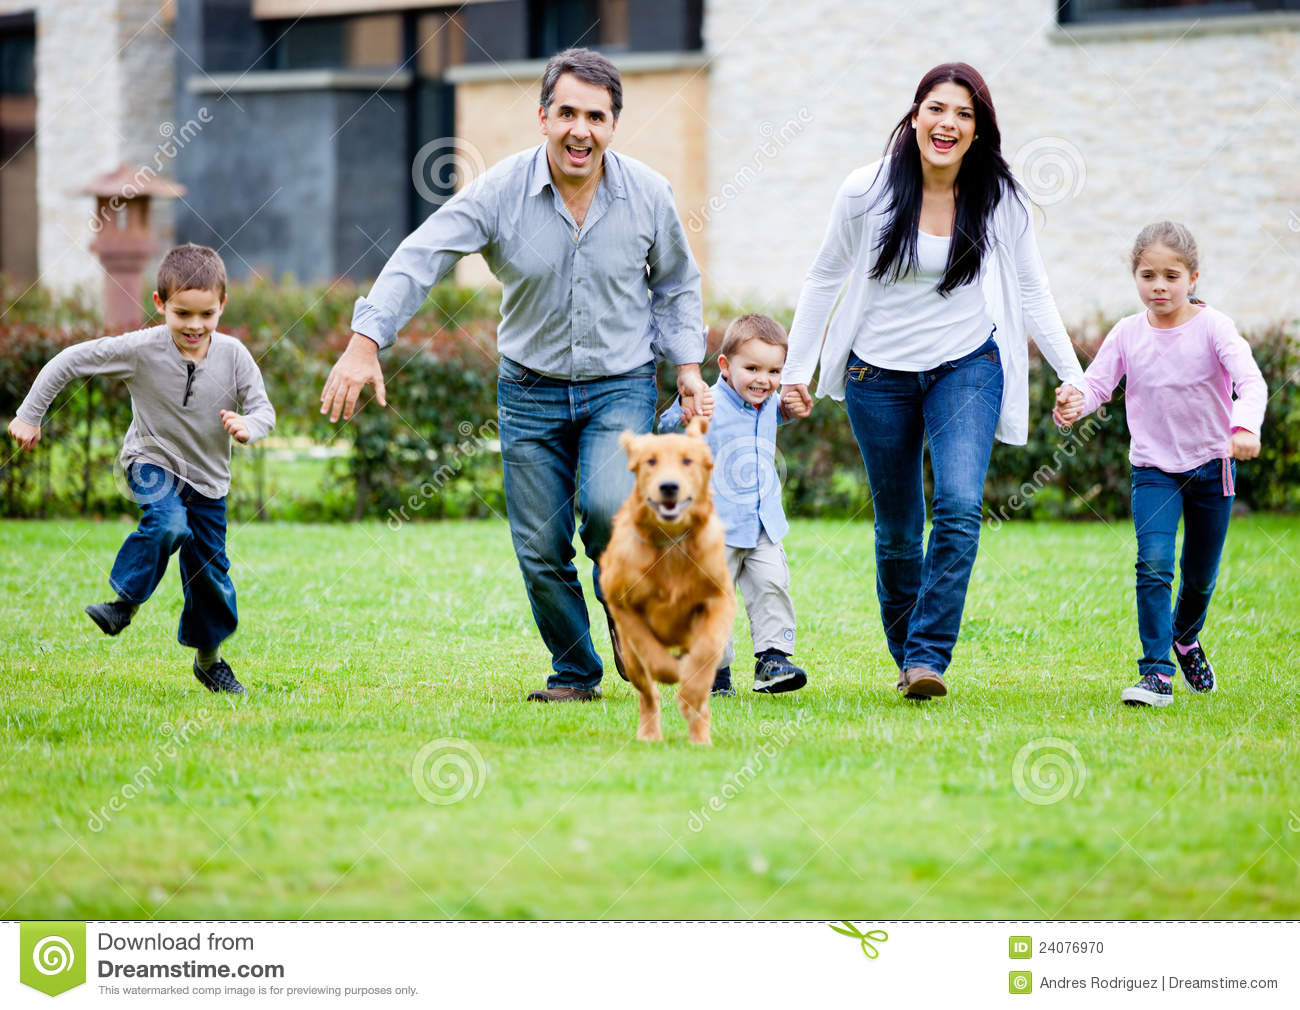 Family Running With Dog Stock Photo - Image: 24076970 Relaxing Dog Music Audio